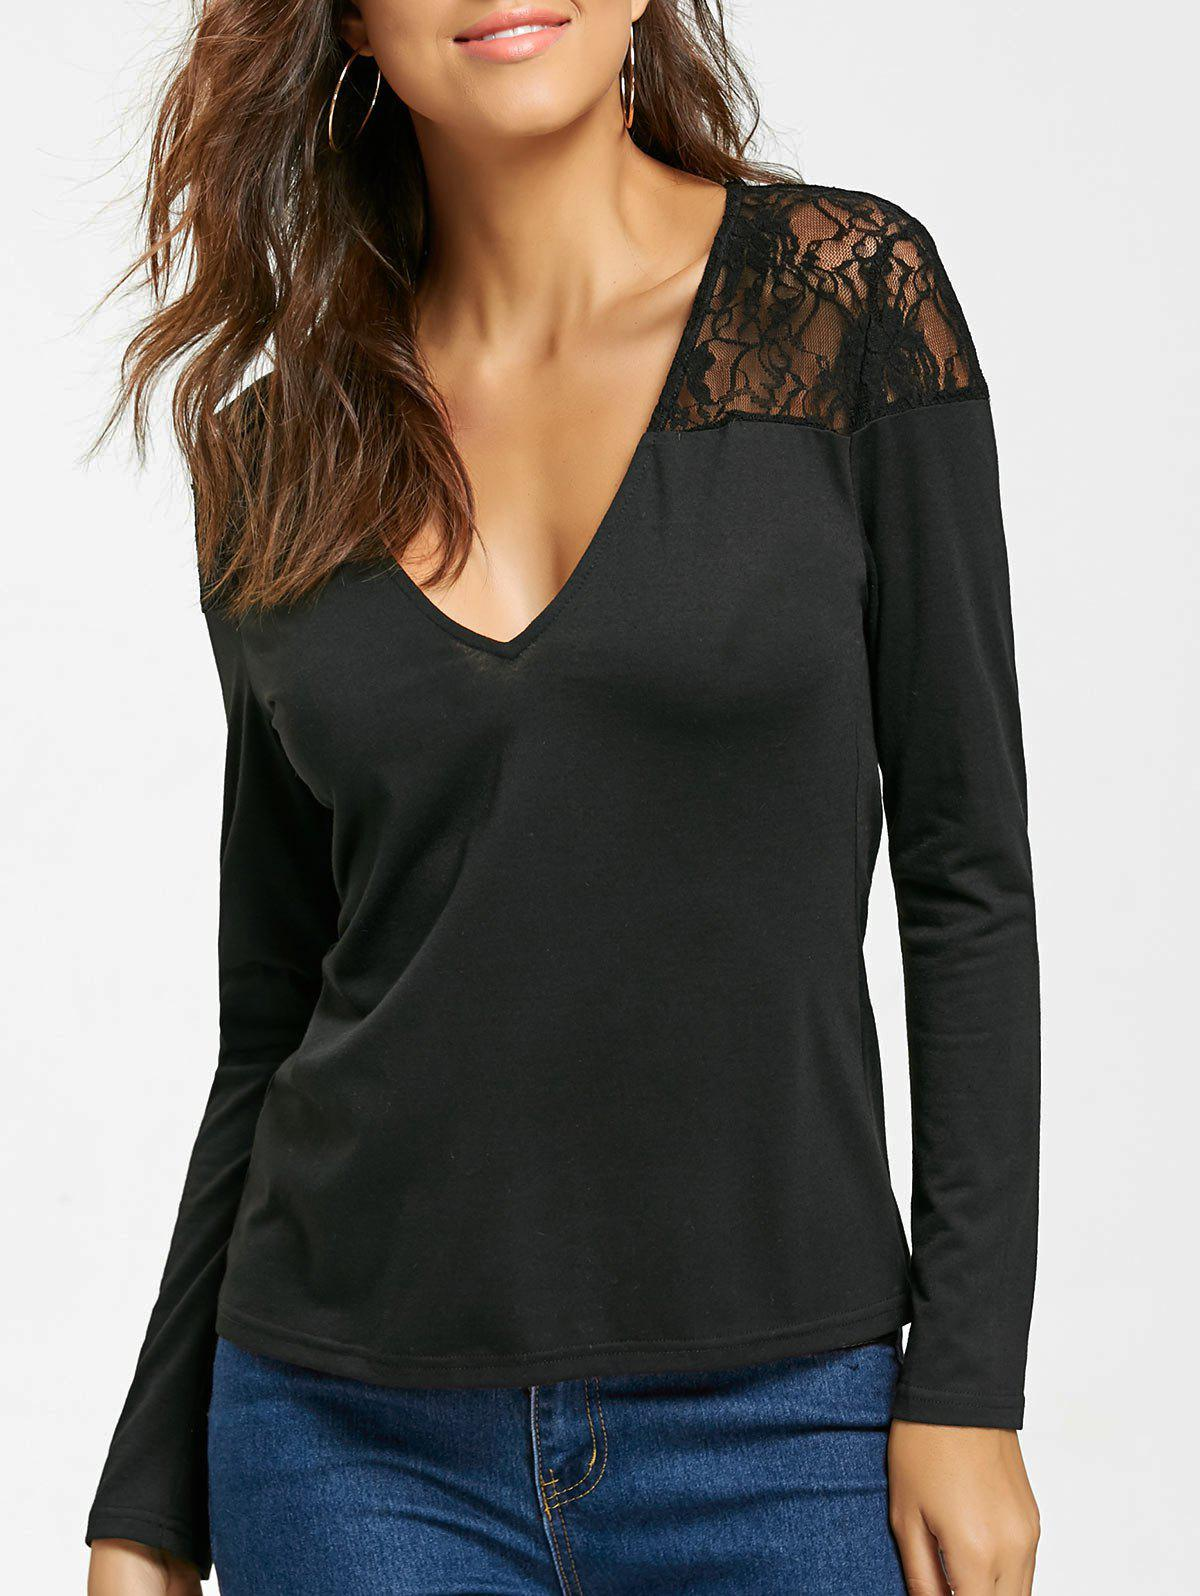 Long Sleeve Lace Panel Slim Fit TopWOMEN<br><br>Size: M; Color: BLACK; Material: Polyester,Spandex; Shirt Length: Regular; Sleeve Length: Full; Collar: V-Neck; Style: Fashion; Pattern Type: Solid; Season: Fall,Spring; Weight: 0.2250kg; Package Contents: 1 x Top;